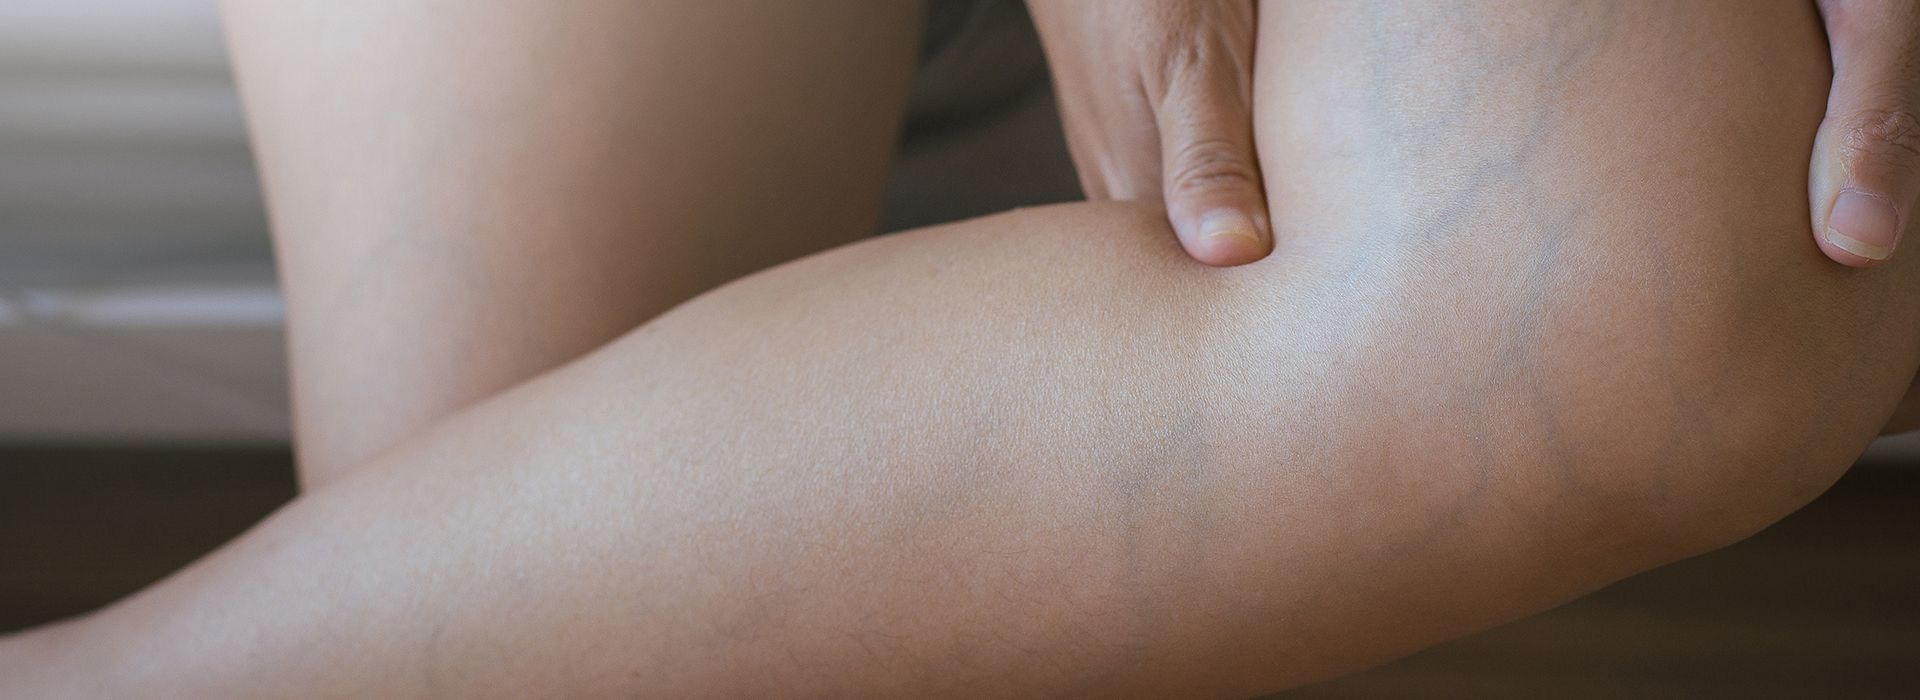 Are you suffering from vein disease? If so, you must be searching for vein treatment in Houston TX. In this article, we show you how to find a great Houston vein treatment clinic. Book an appointment for the Vein specialist. Call today at (646) 494-4043